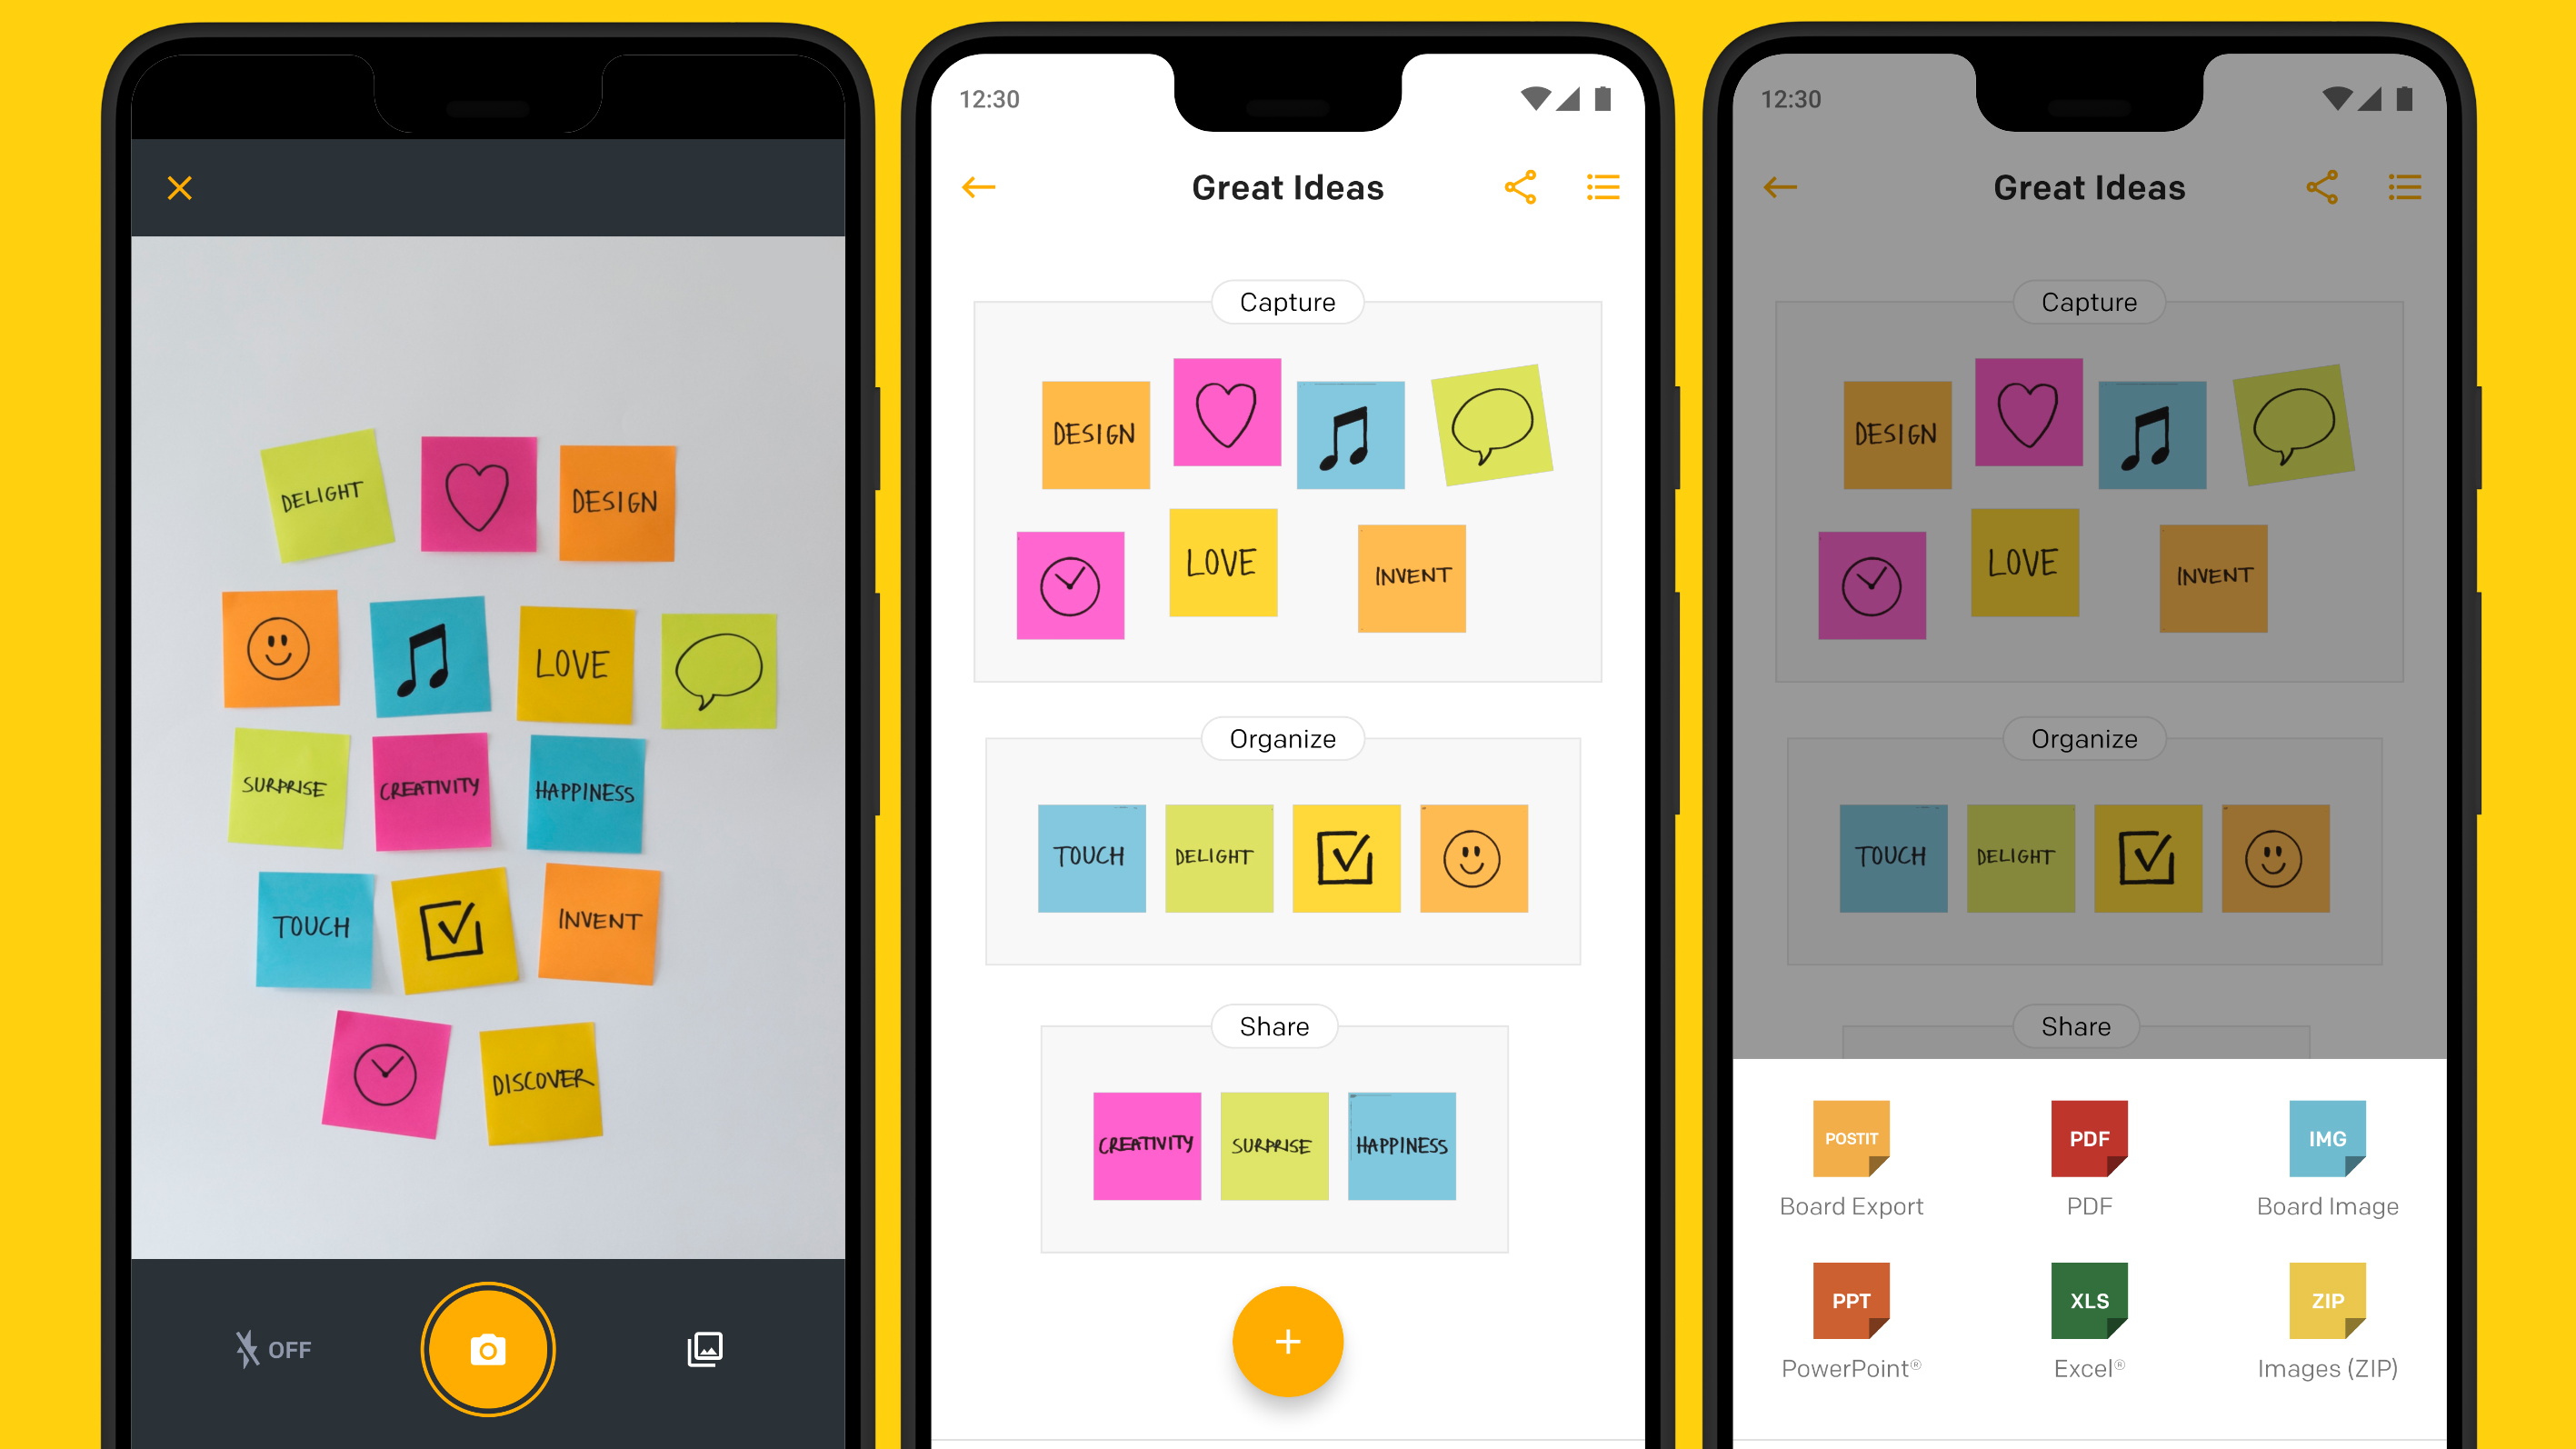 Post-it releases Android app to scan and organize sticky notes, only